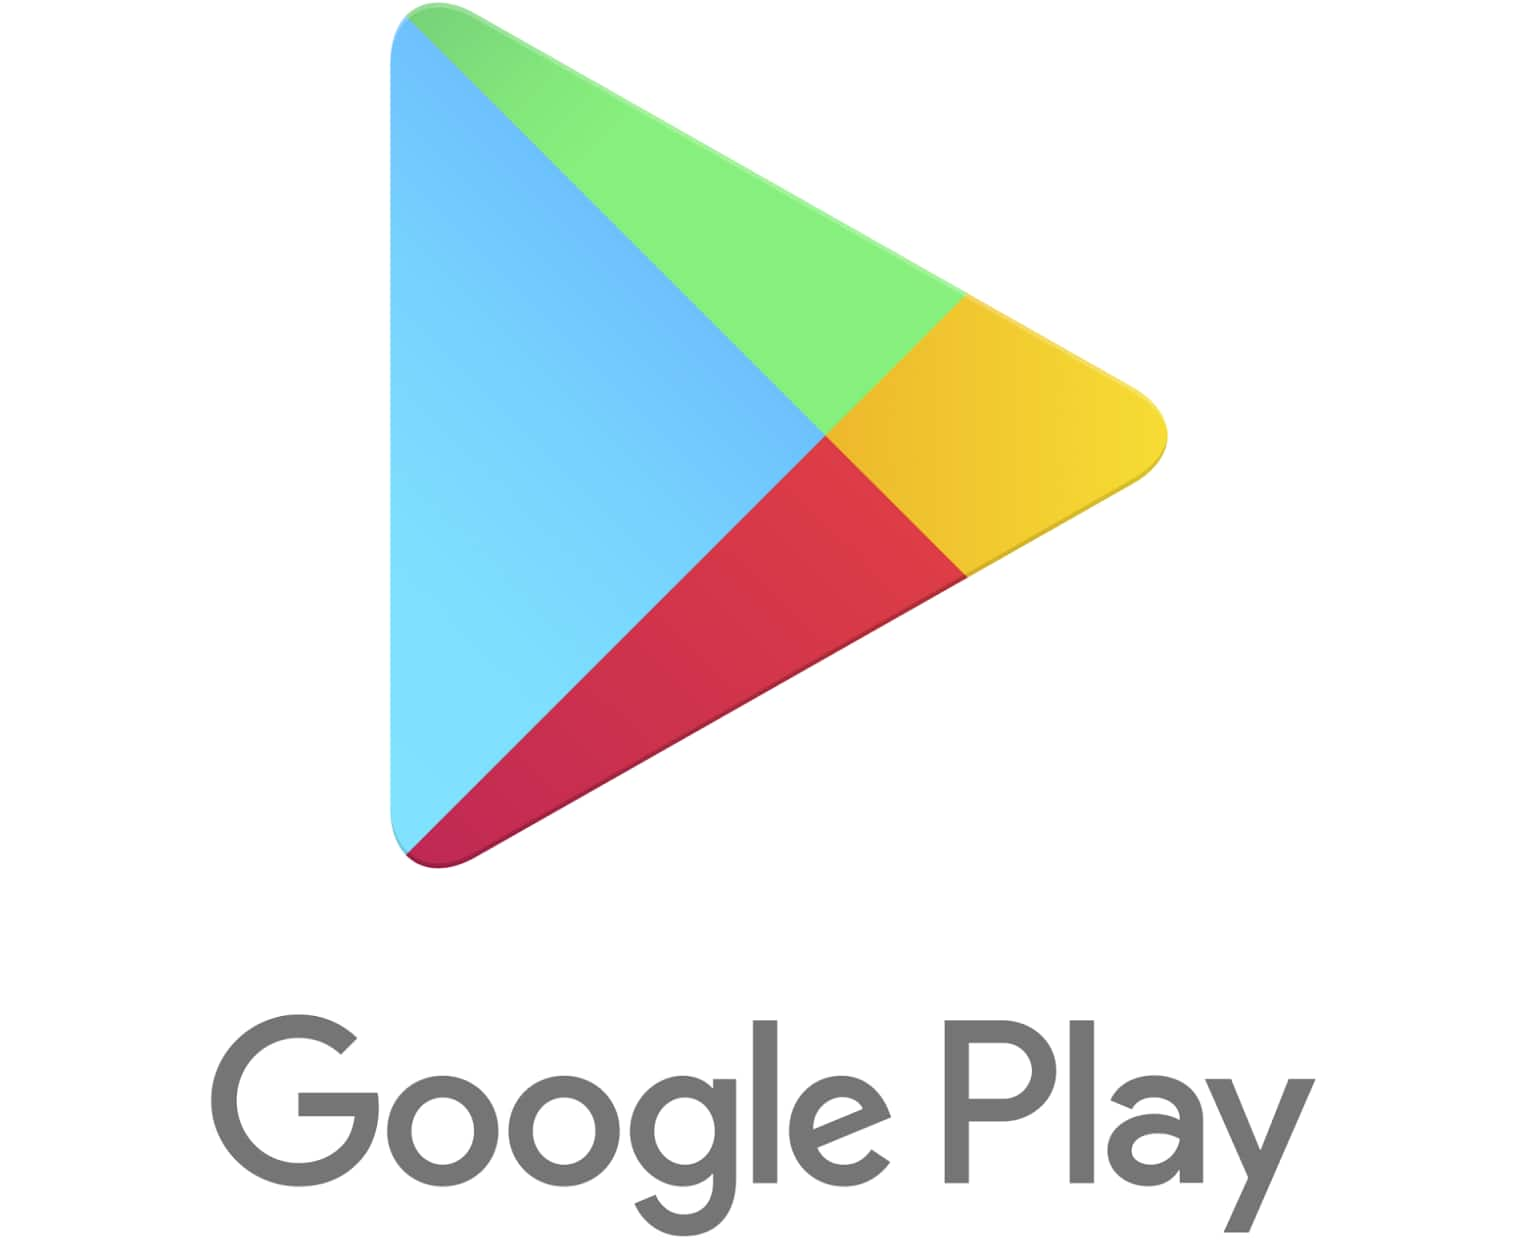 Google Play 1 Credit Slickdeals